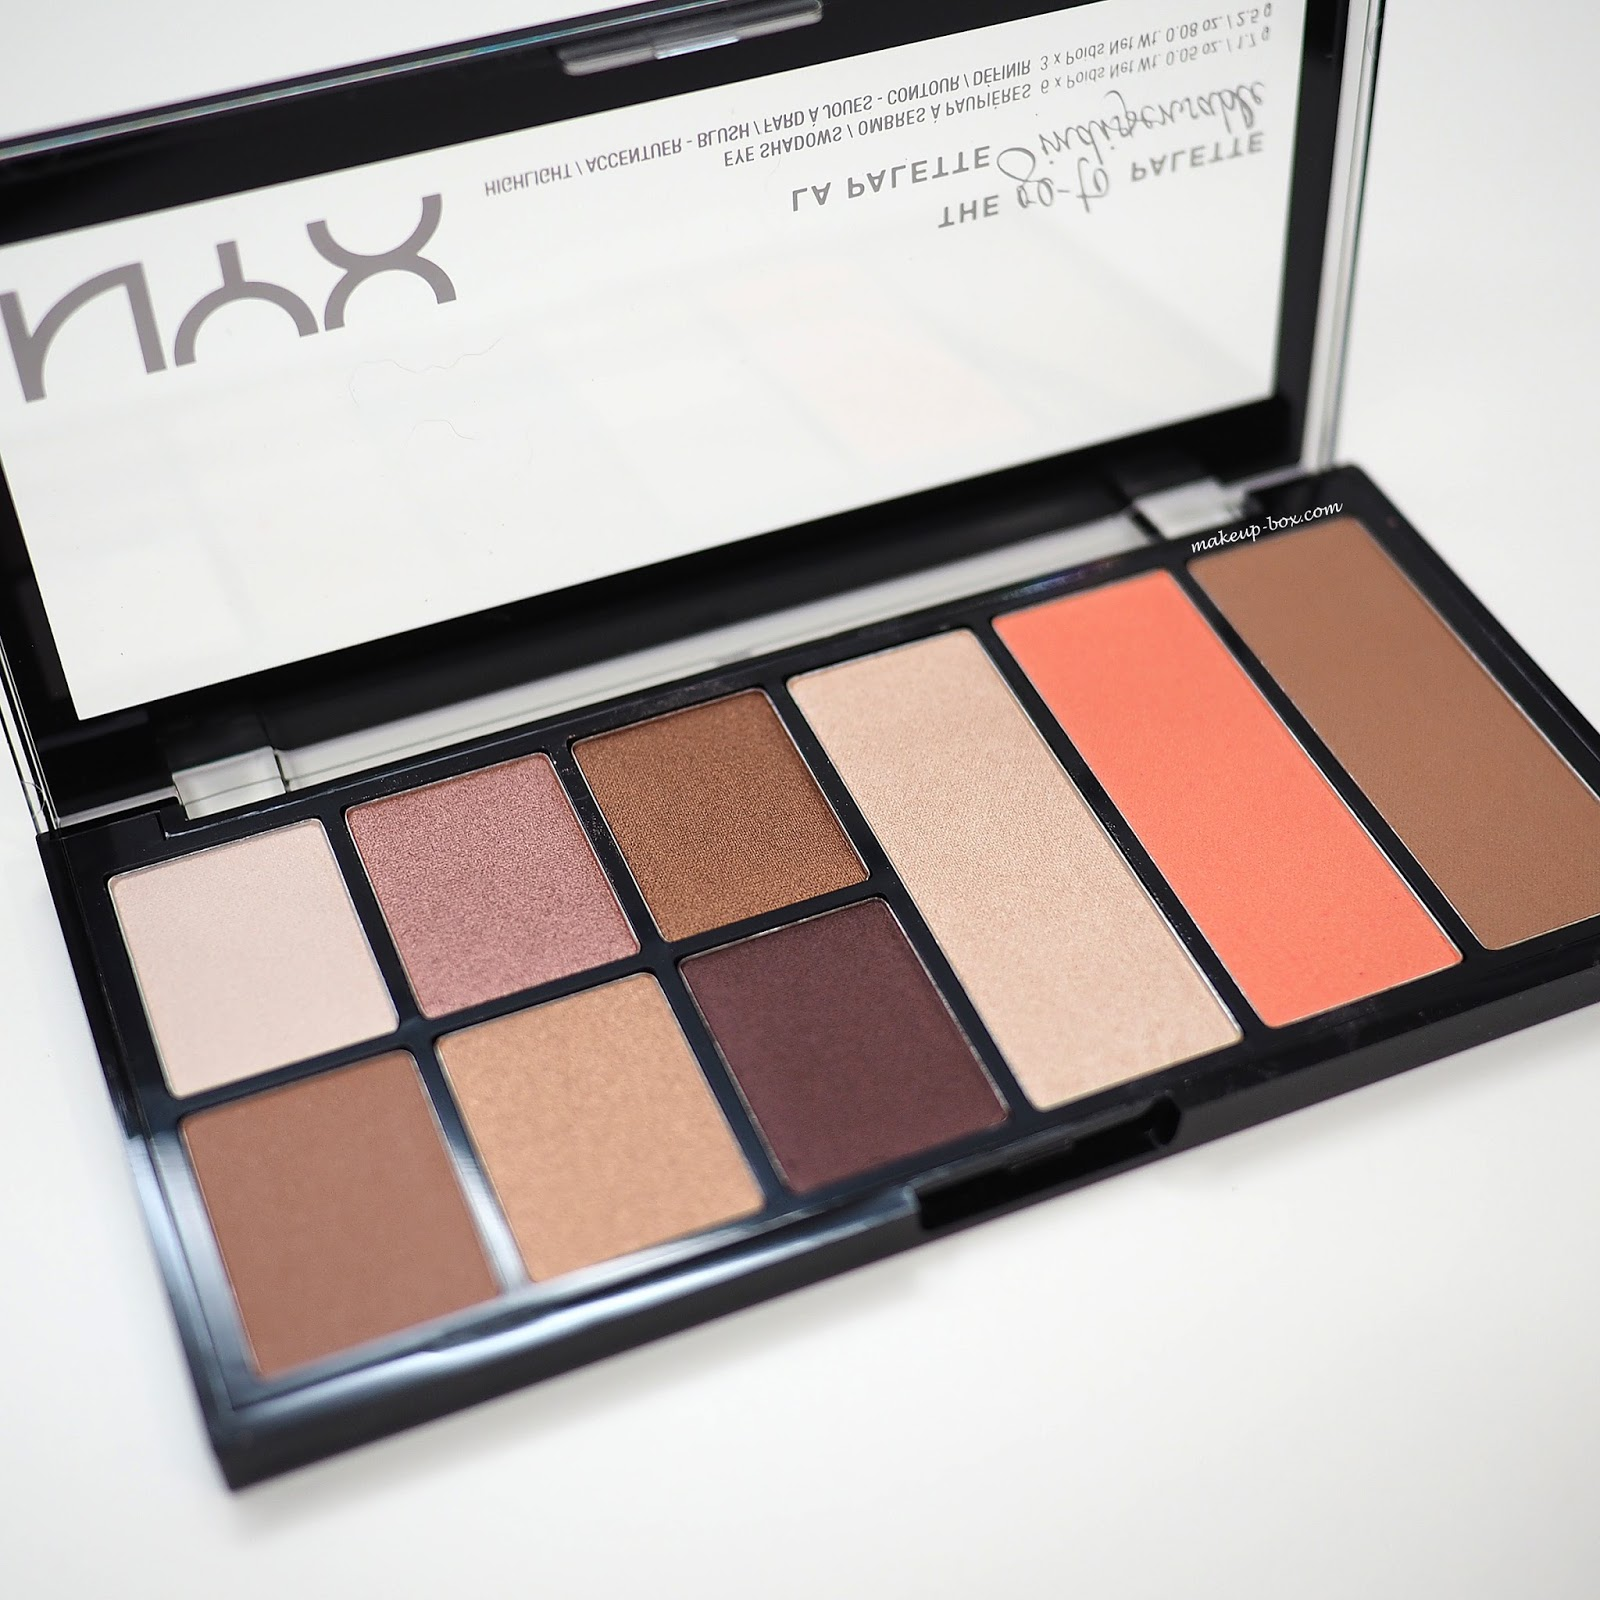 The Makeup Box: NYX News - relaunch under L'oreal in